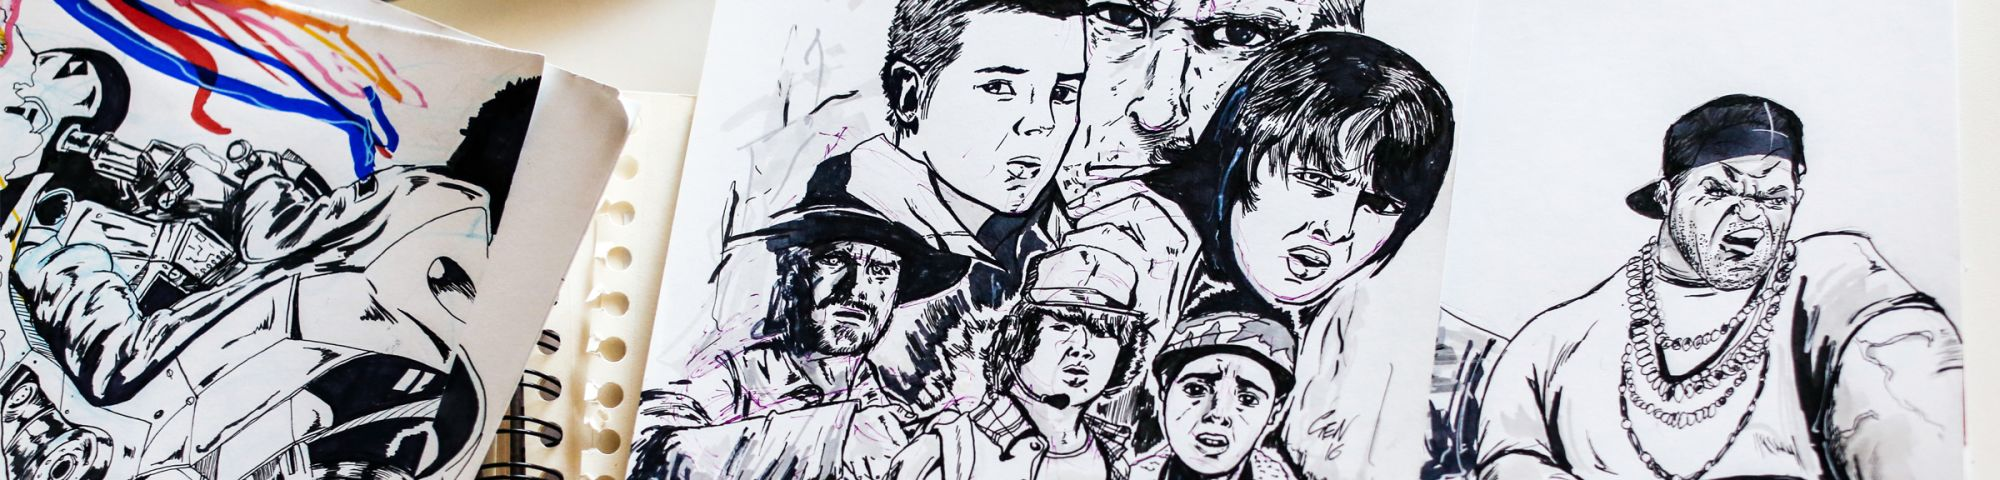 Close up shot of pen and ink images from a graphic novel